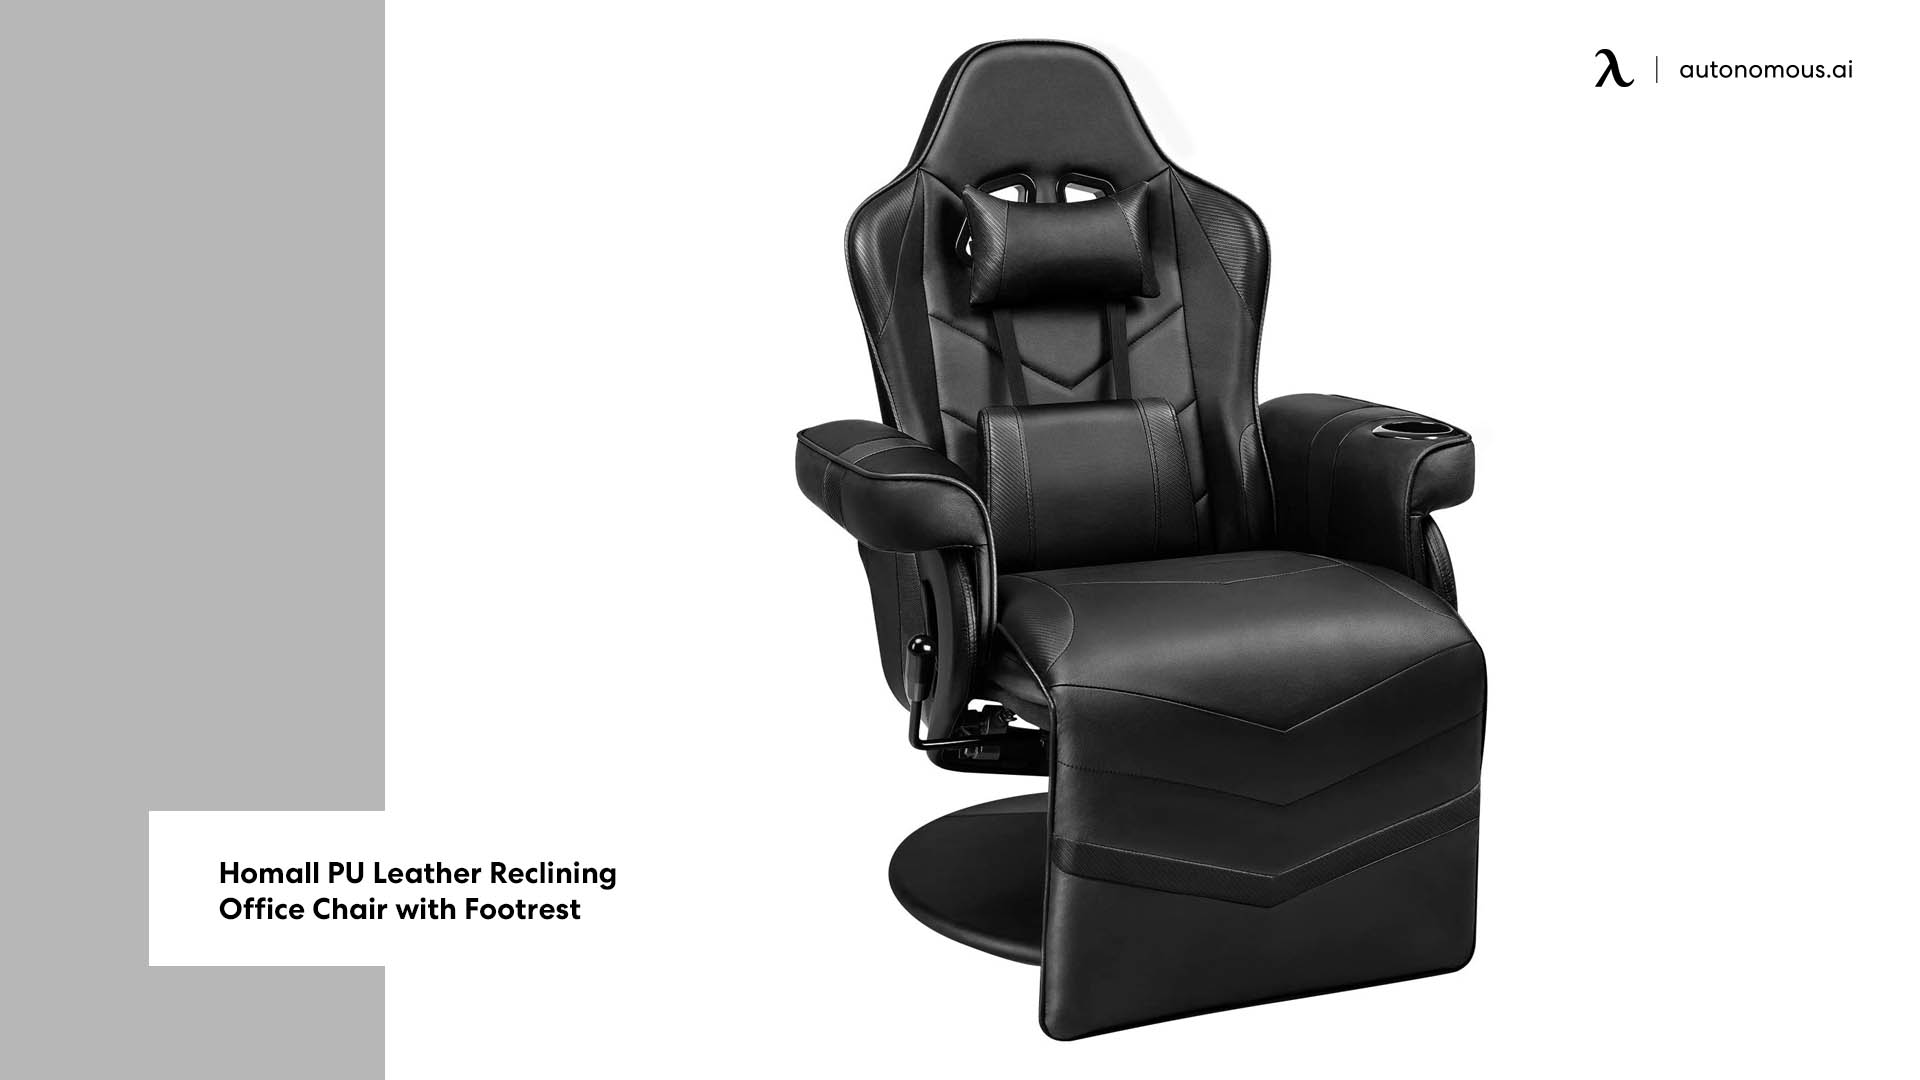 Photo of Homall PU Leather Reclining Office Chair with Footrest